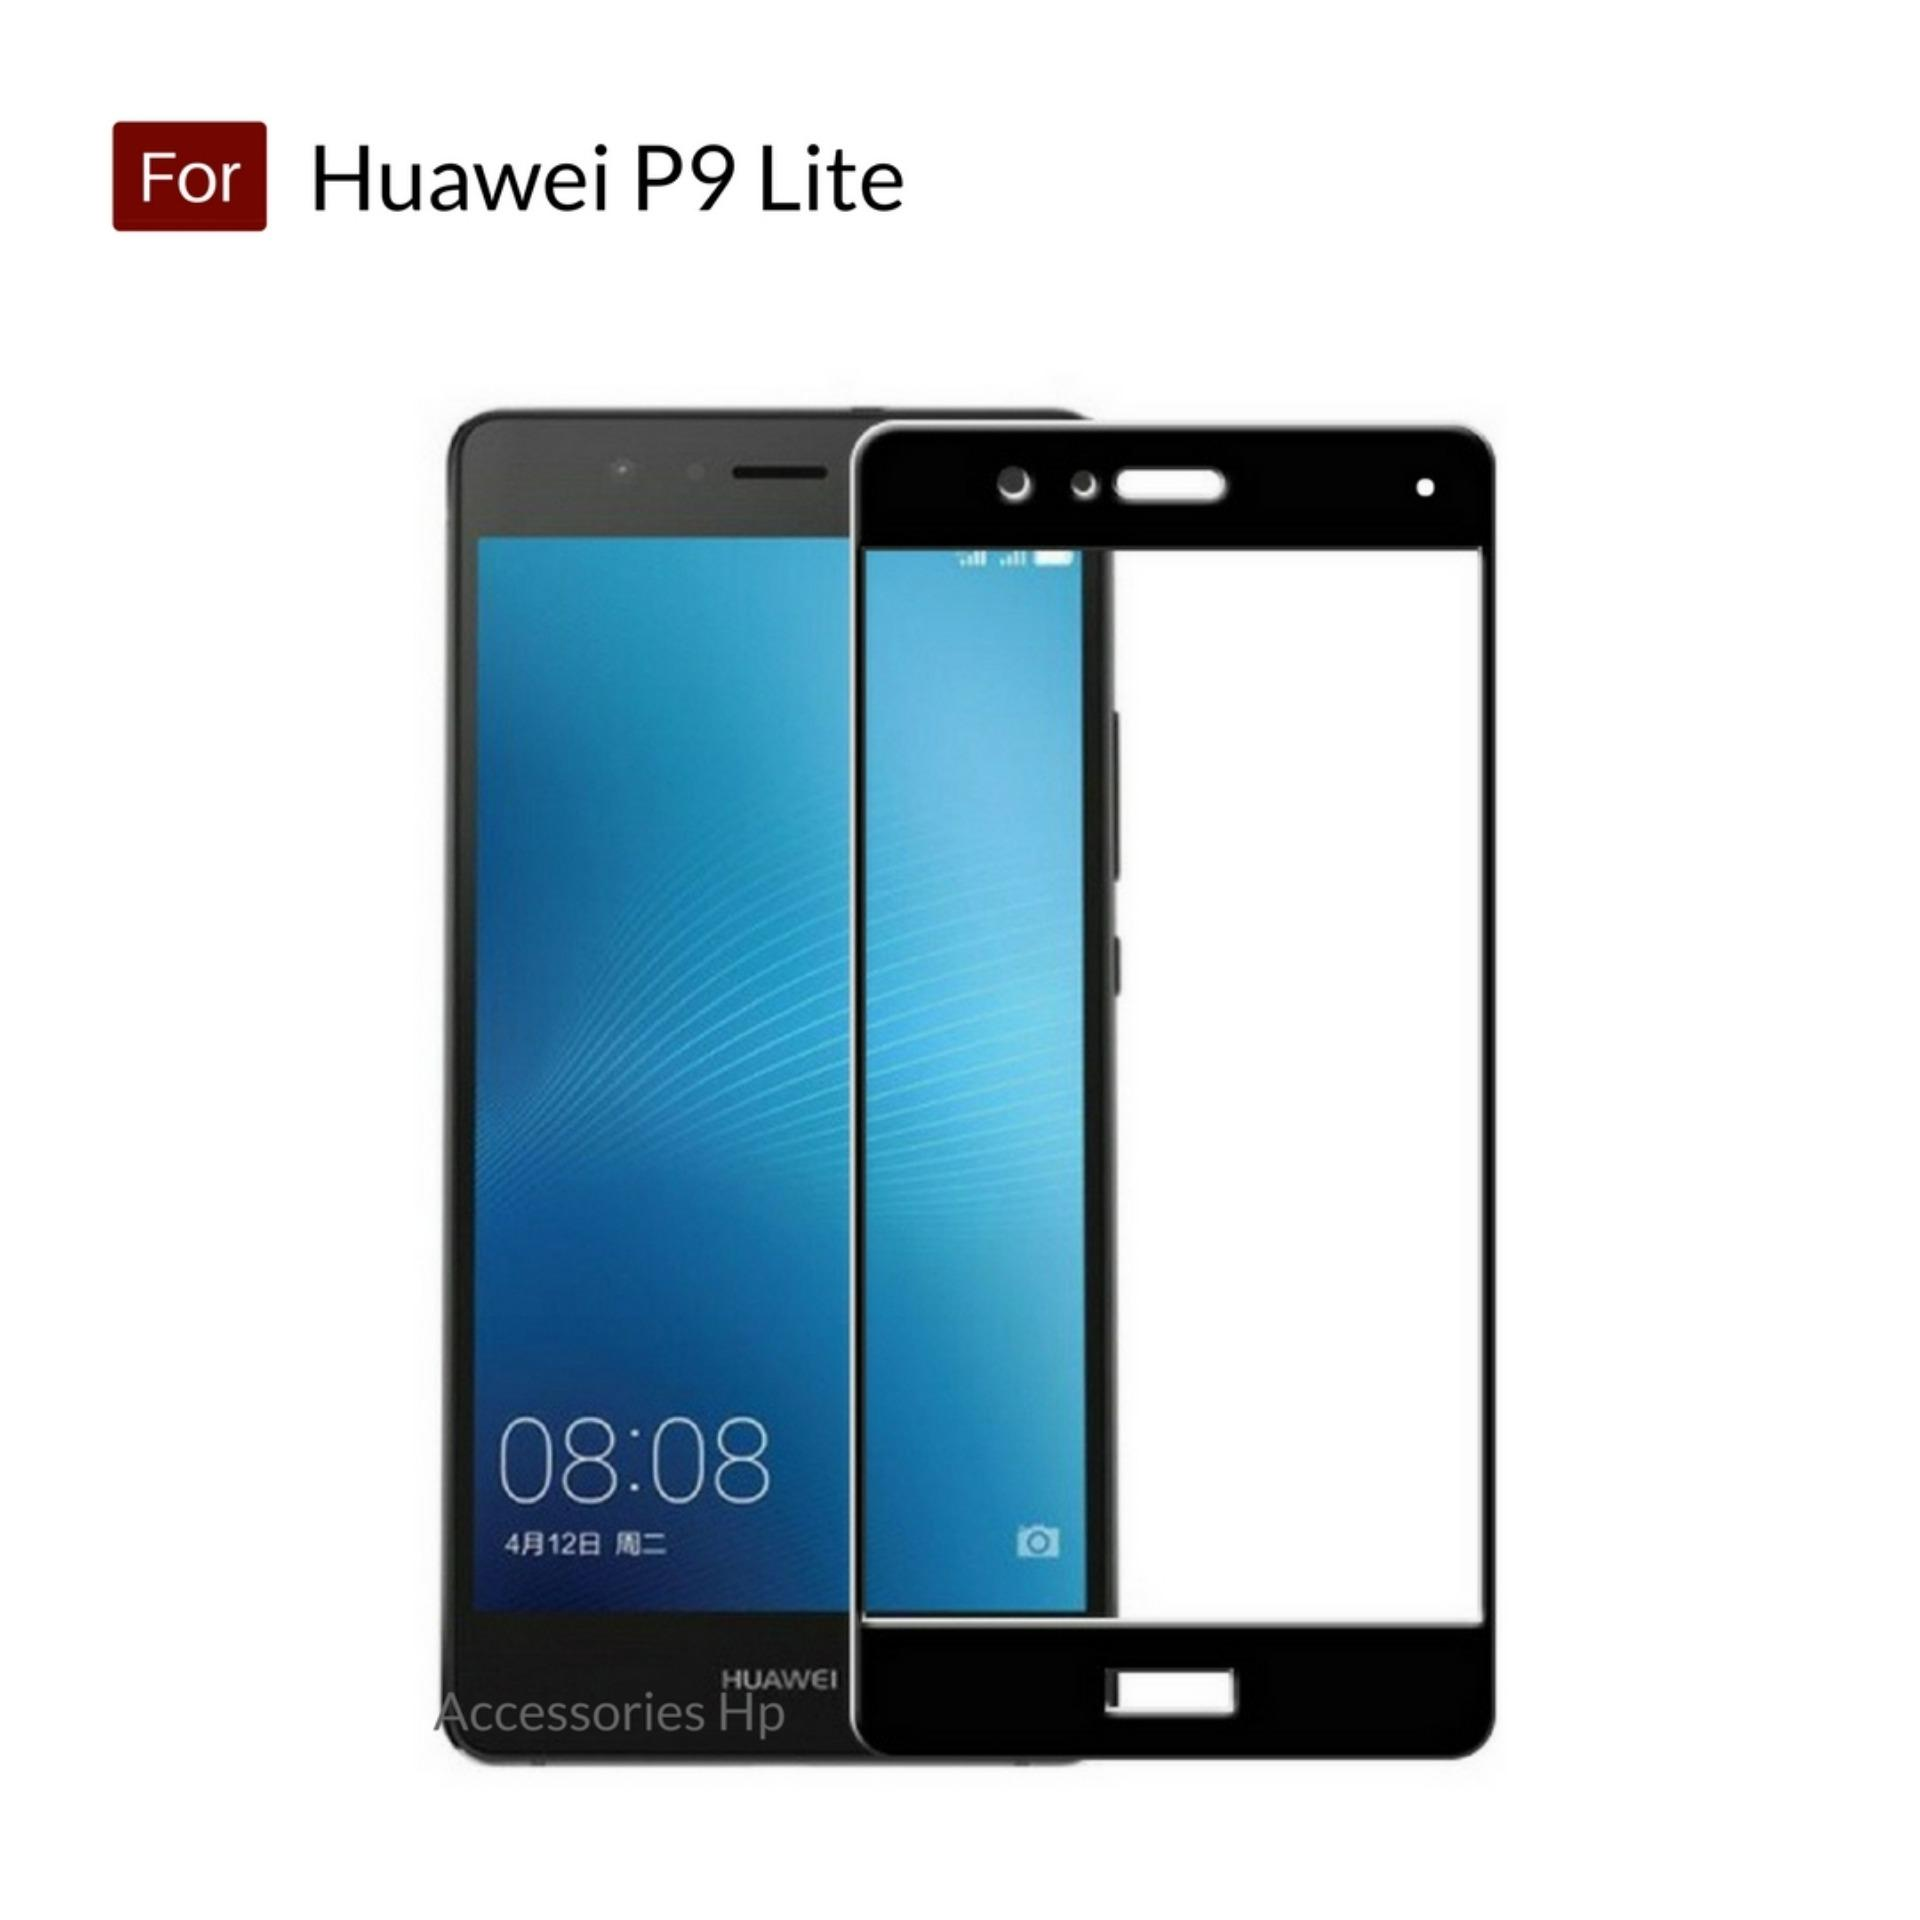 Accessories Hp Full Cover Tempered Glass Warna Screen Protector for Huawei P9 Lite - Black